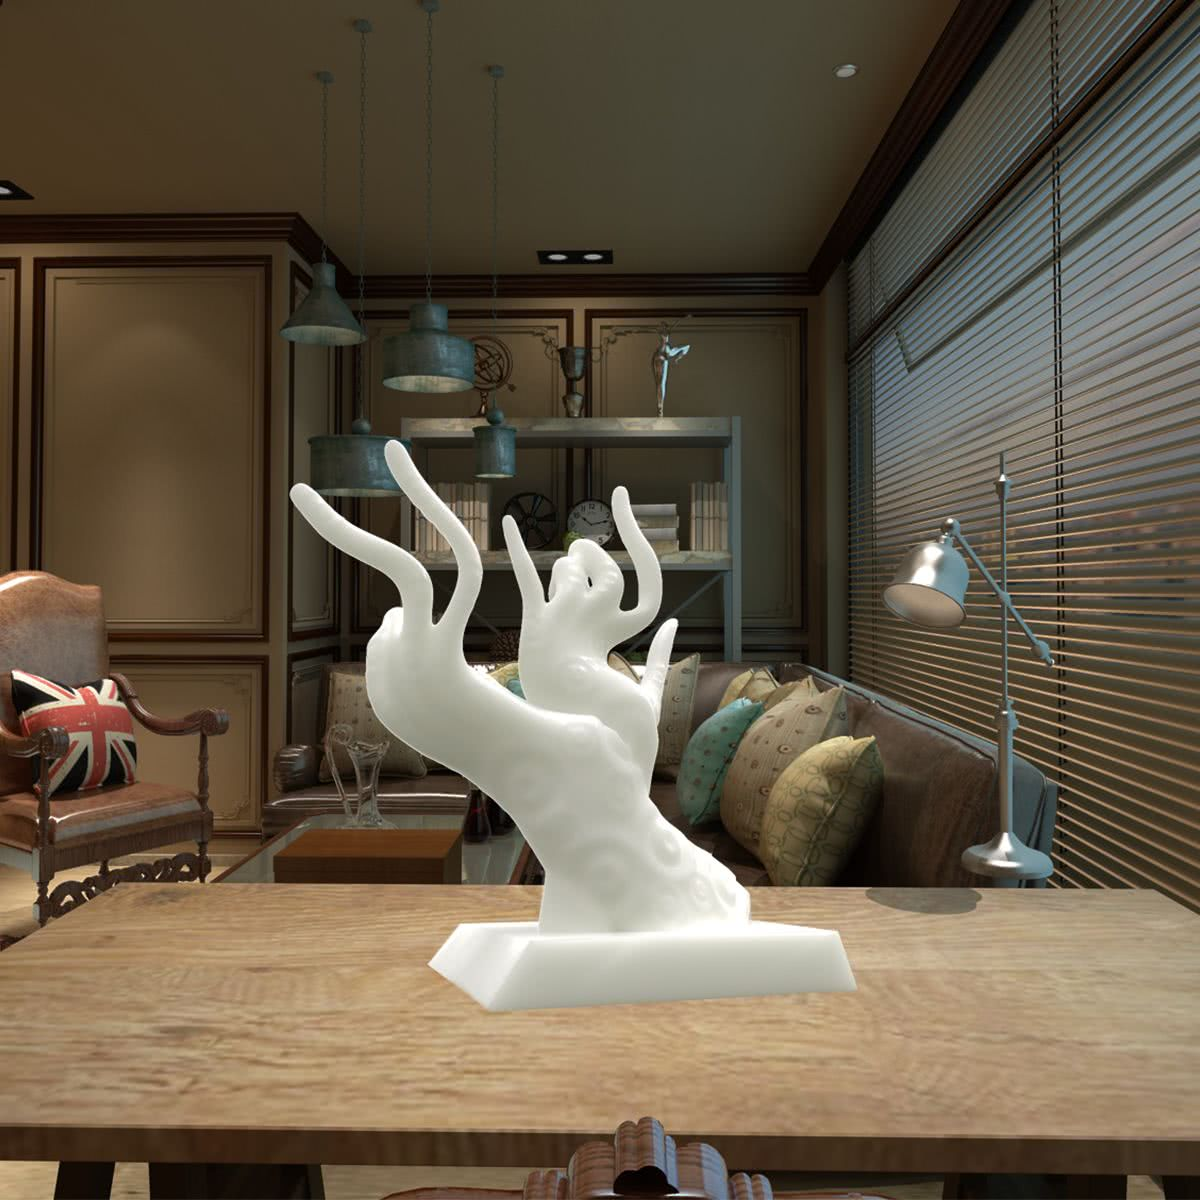 Hand Reflection Tomfeel 3D Printed Sculpture Home Decoration Reflection Hand